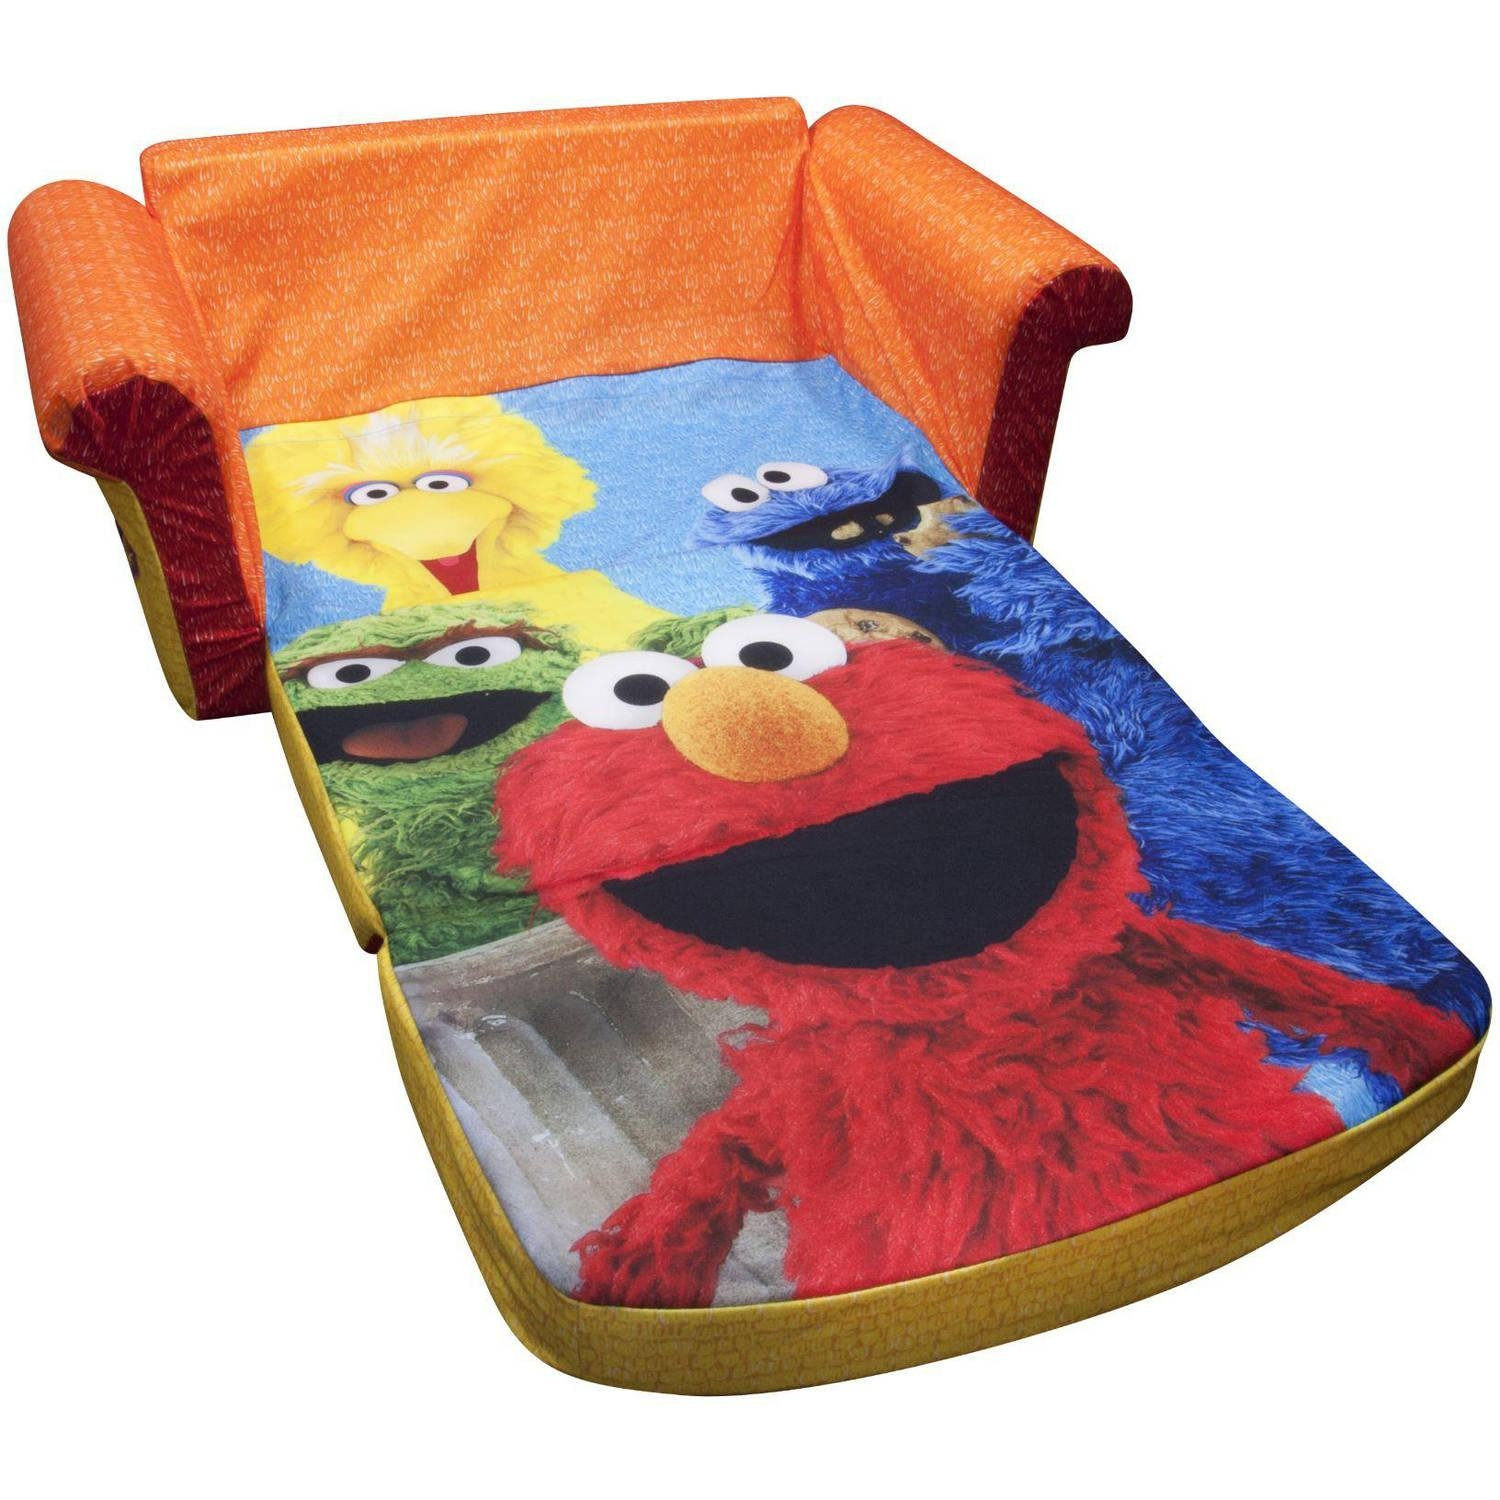 Marshmallow 2 In 1 Flip Open Sofa, Sesame Street's Elmo – Walmart With Sofa Beds For Baby (Image 6 of 20)